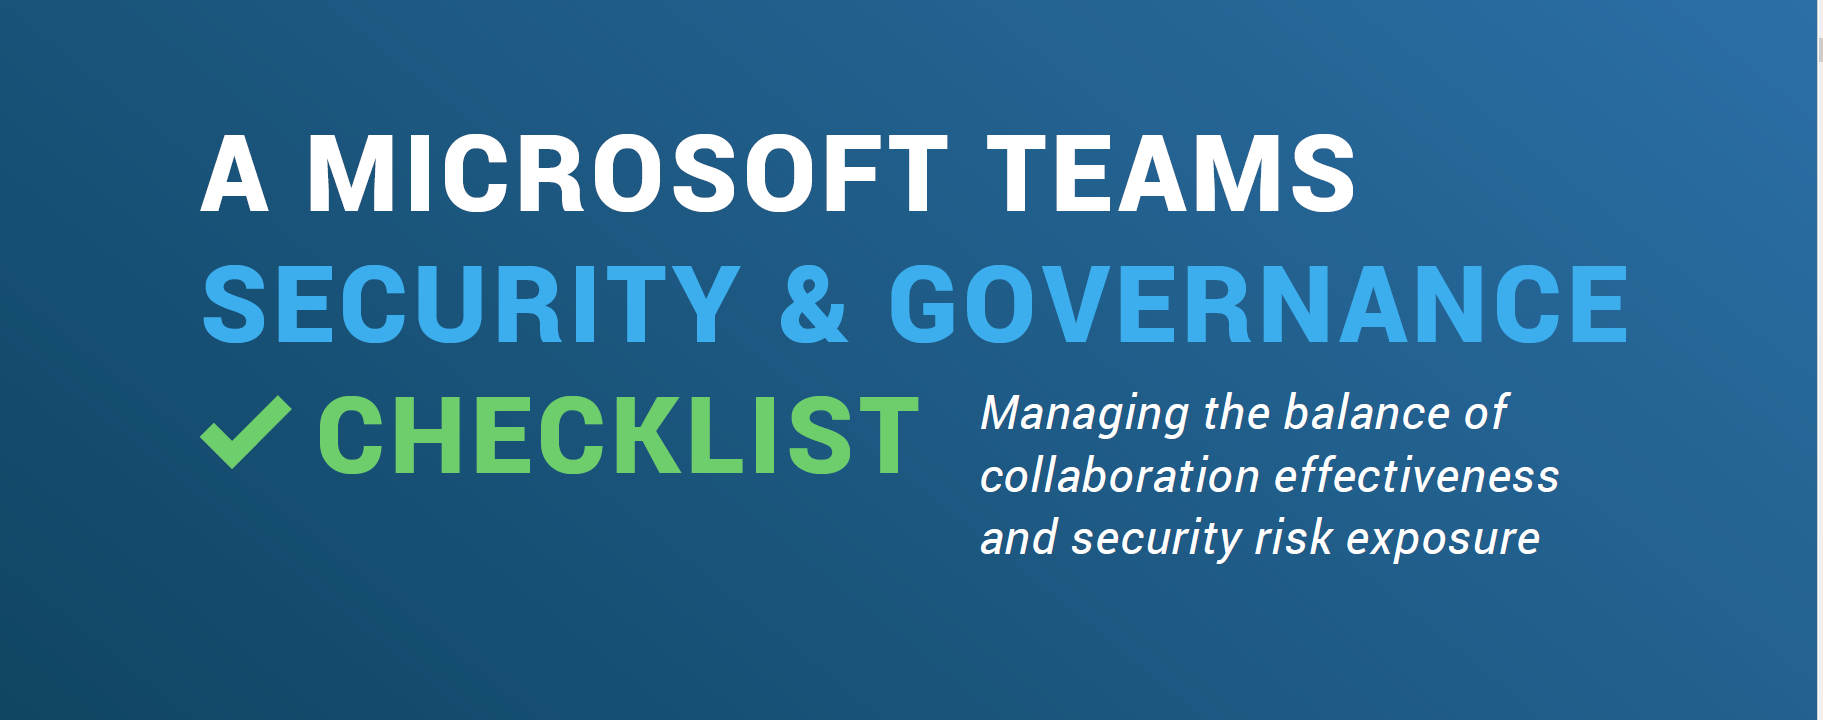 A Microsoft Teams Security and Governance Checklist